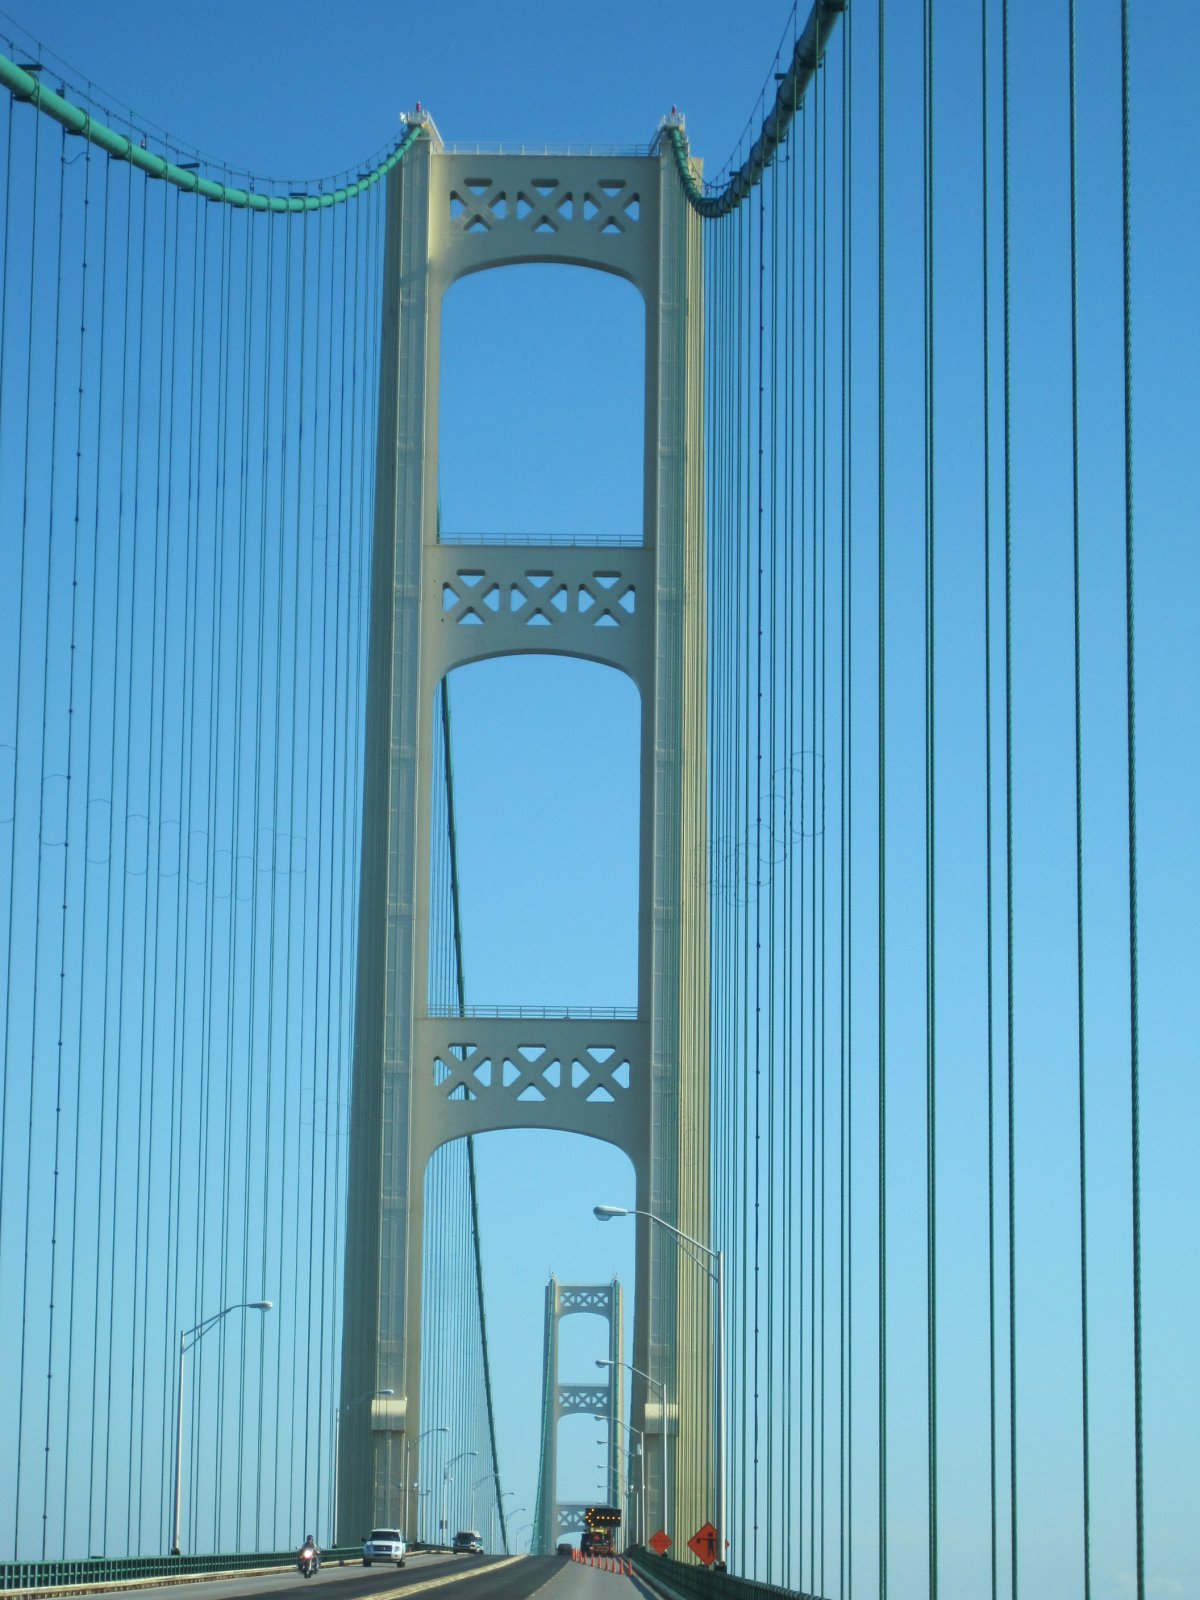 Click image for larger version  Name:Michigan 115.jpg Views:57 Size:278.4 KB ID:137274